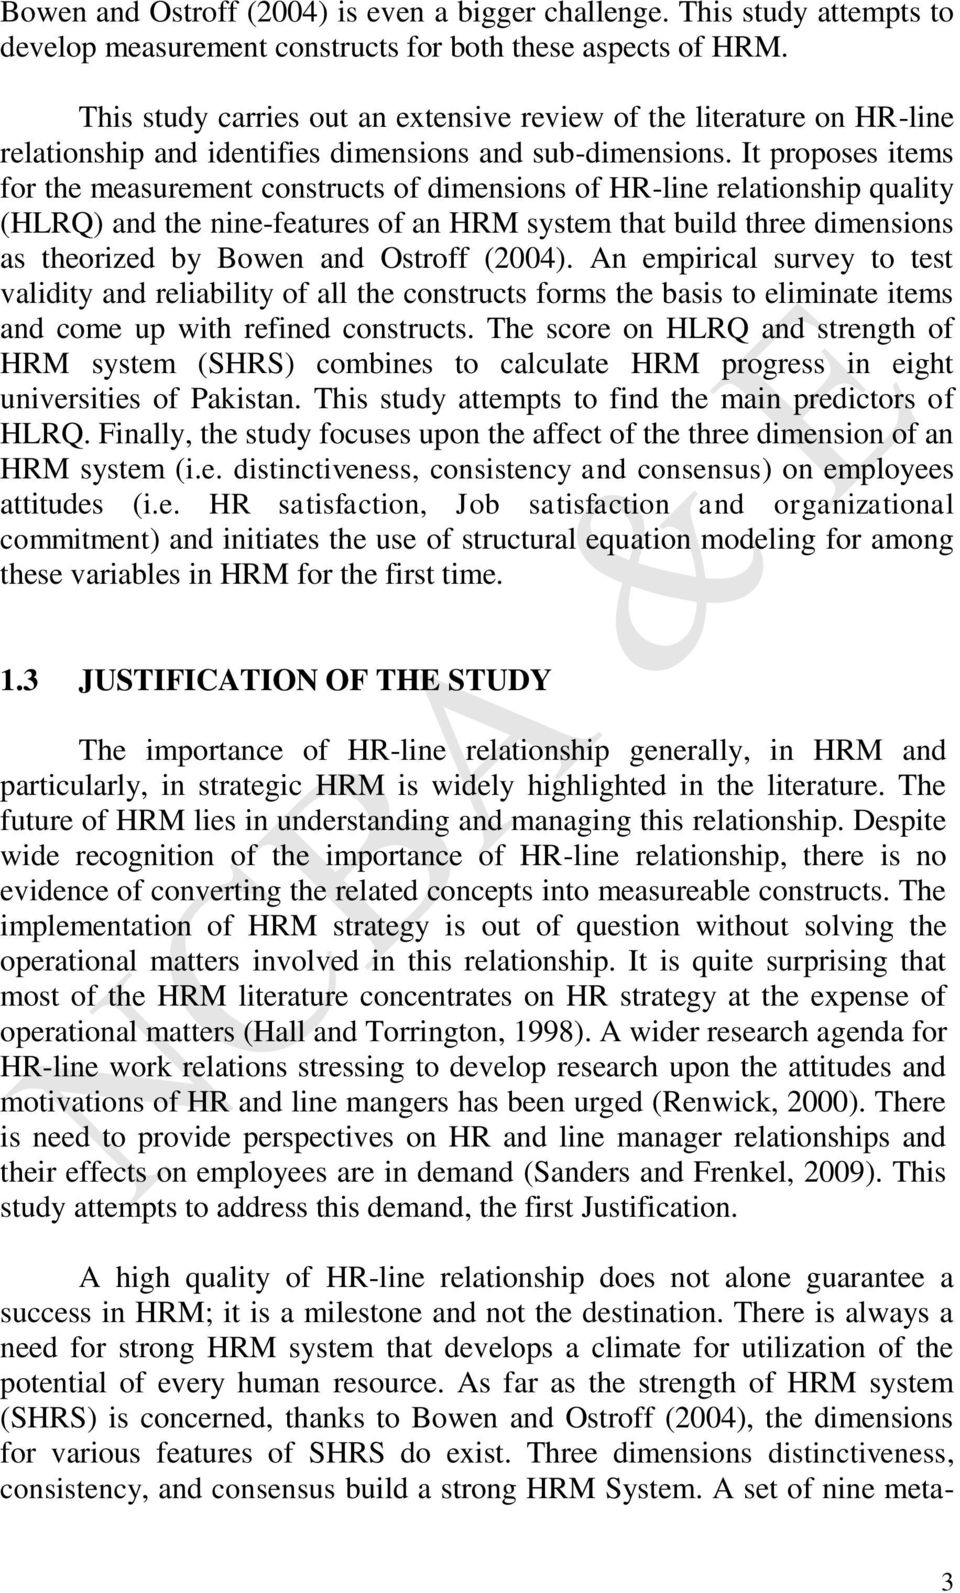 It proposes items for the measurement constructs of dimensions of HR-line relationship quality (HLRQ) and the nine-features of an HRM system that build three dimensions as theorized by Bowen and